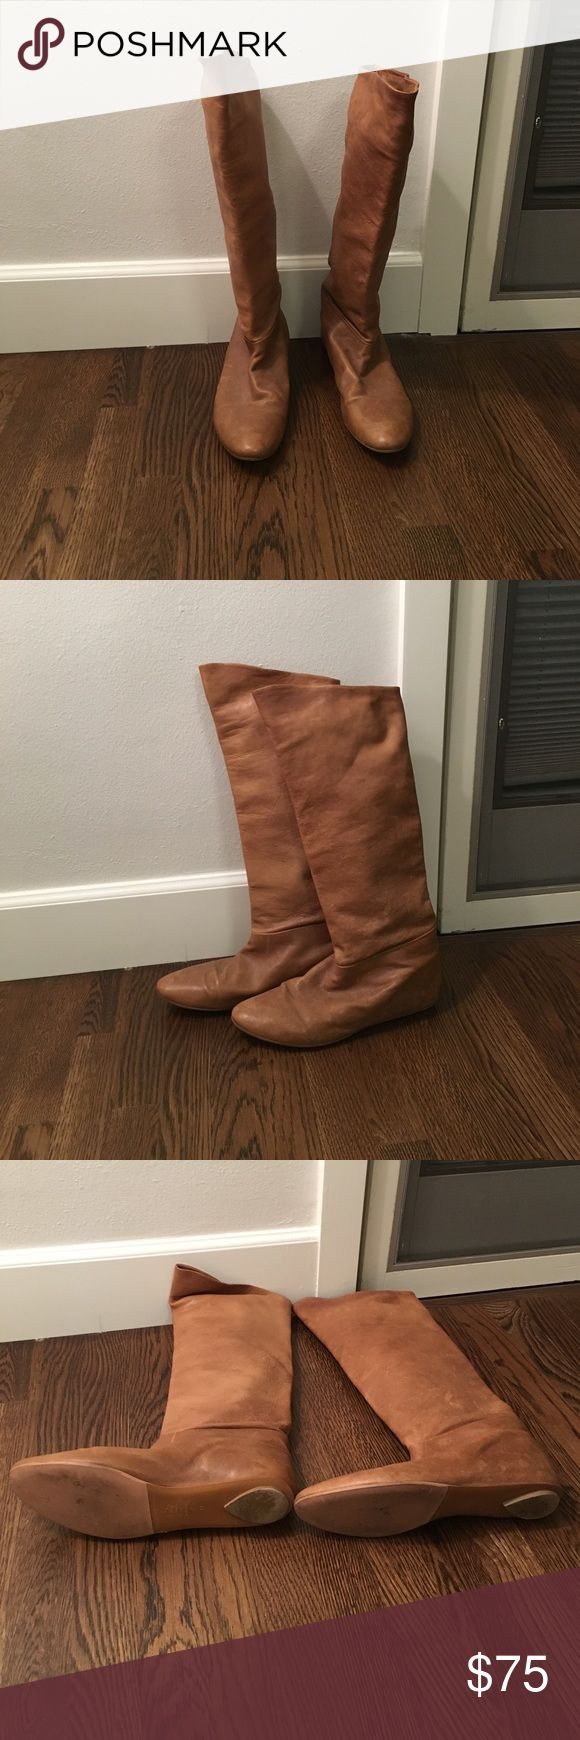 Sigerson Morrison Tall Boots Flat light brown boots. Size 11. Lightly used. Authentic Sigerson Morrison! CHEAPER ON MERCARI Sigerson Morrison Shoes